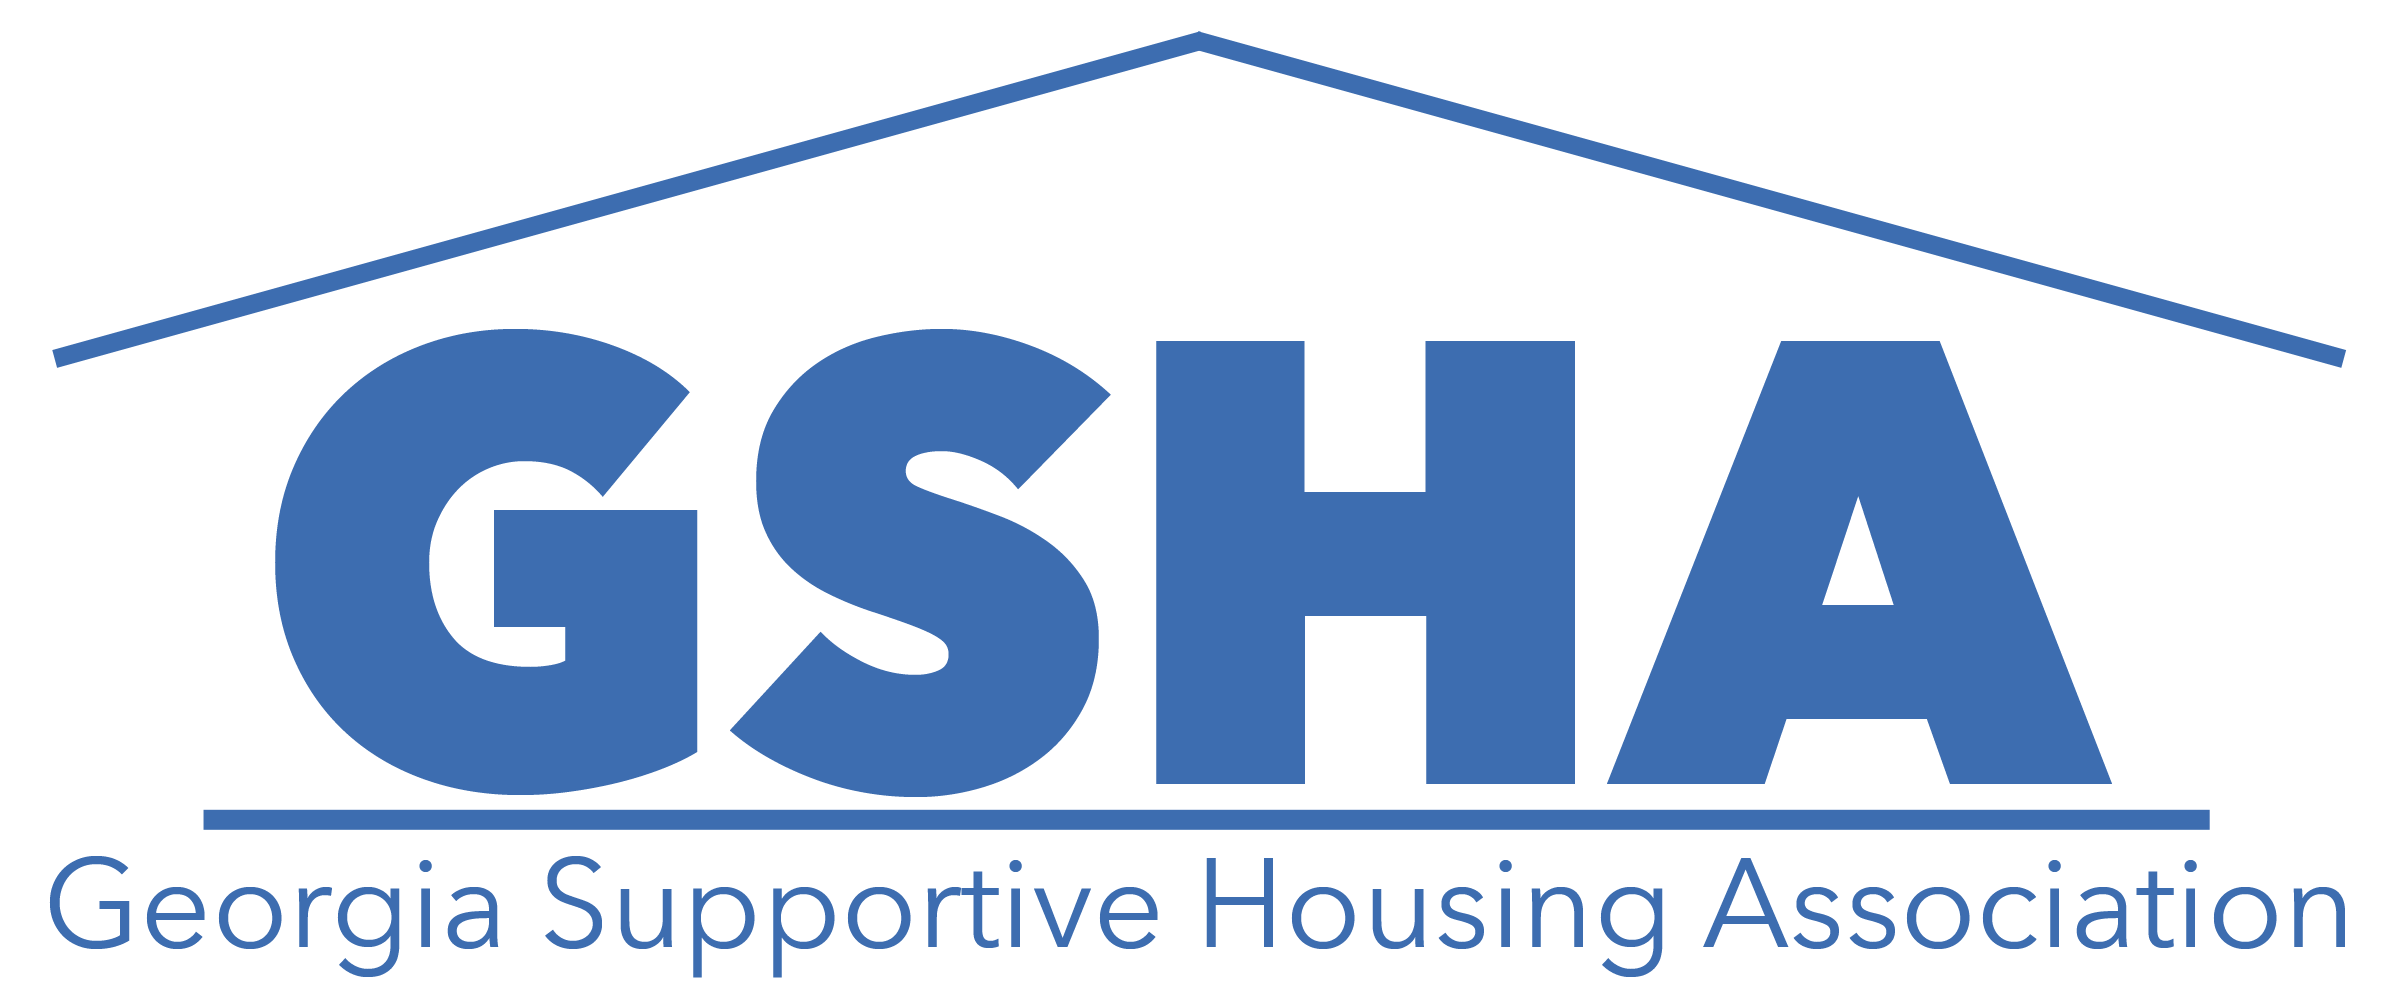 About | Georgia Supportive Housing Association